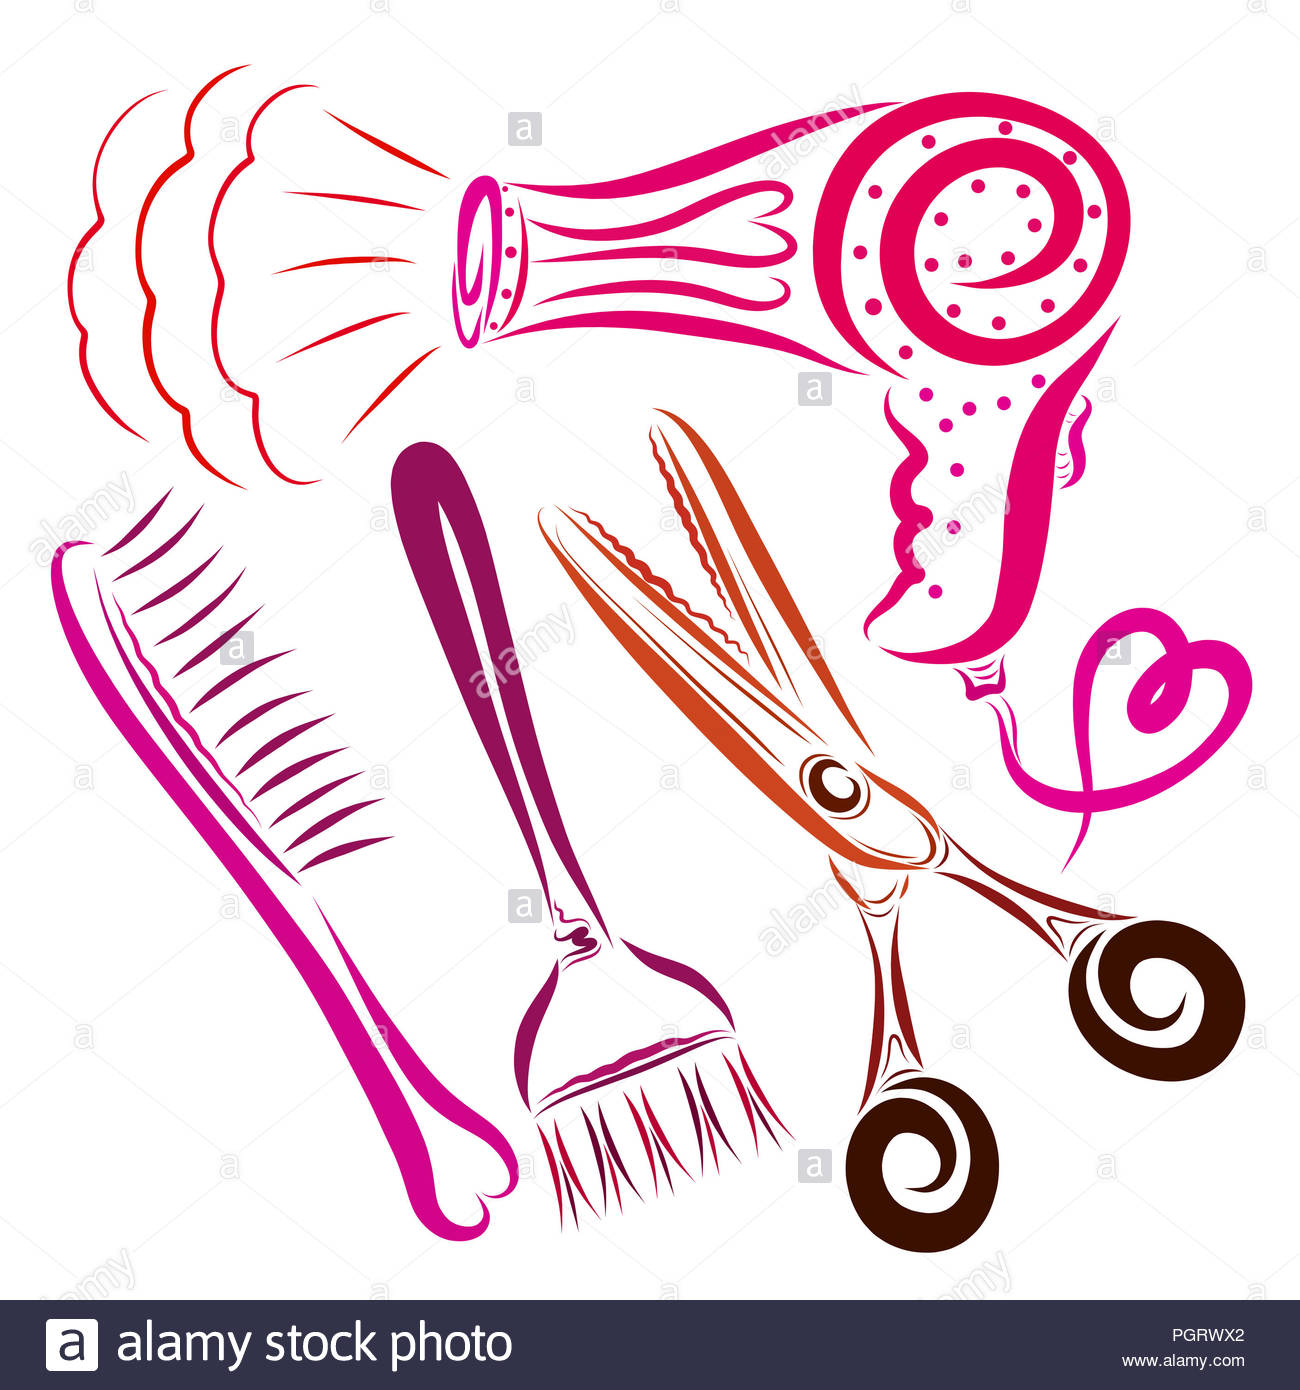 Hair Dryer With A Heart A Comb A Brush For Coloring Hair